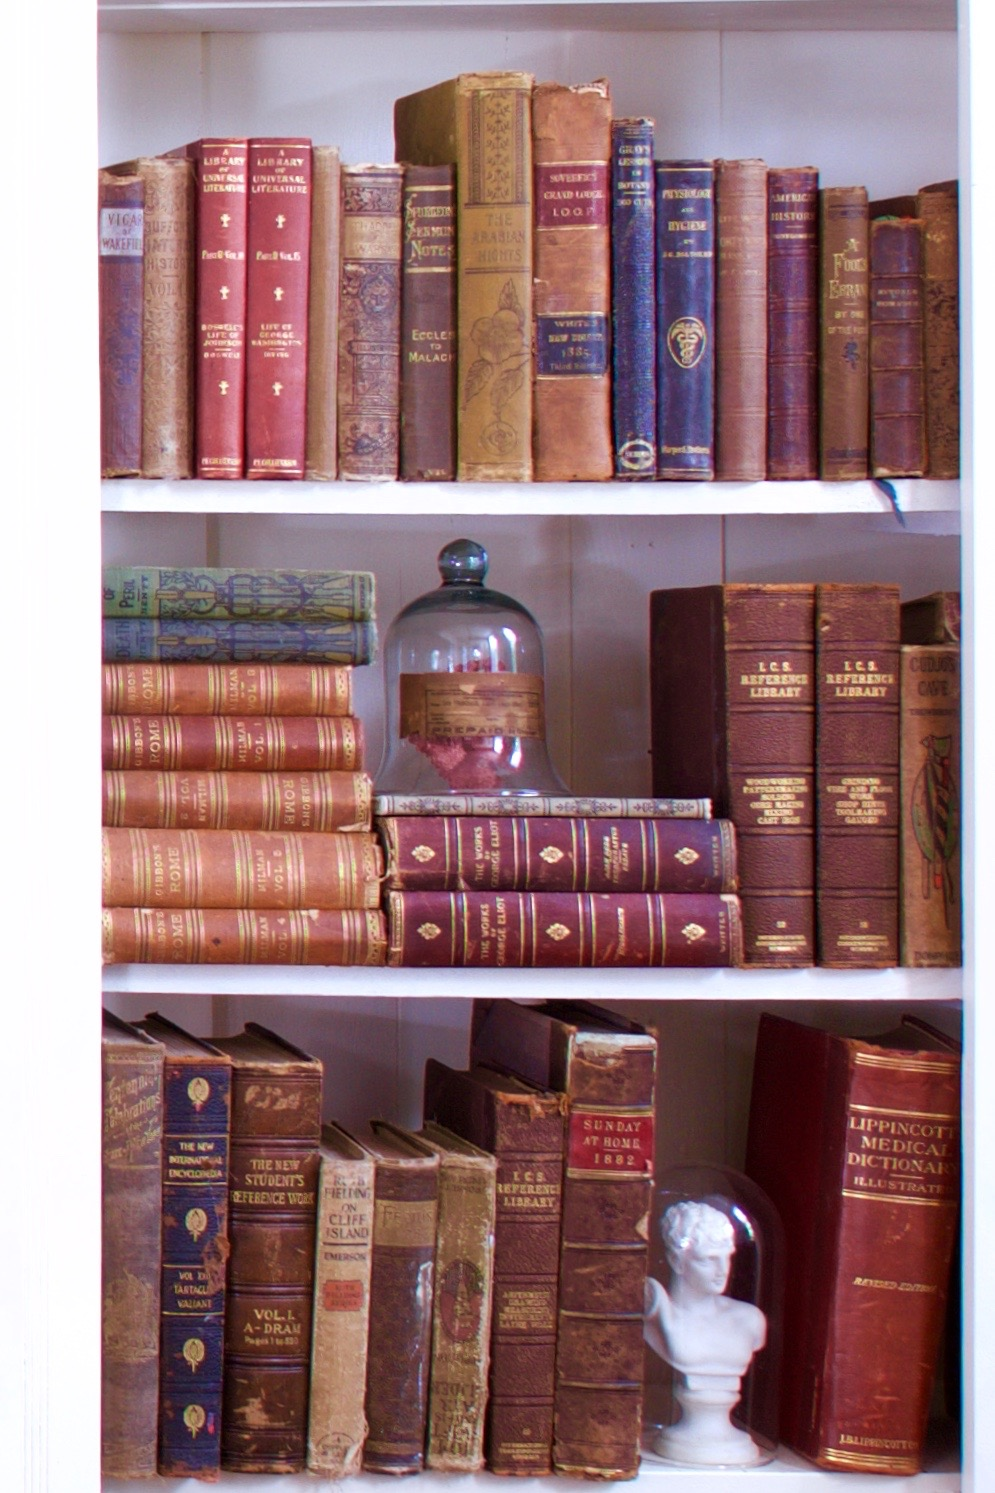 Cloches add interest and charm to shelves in this library